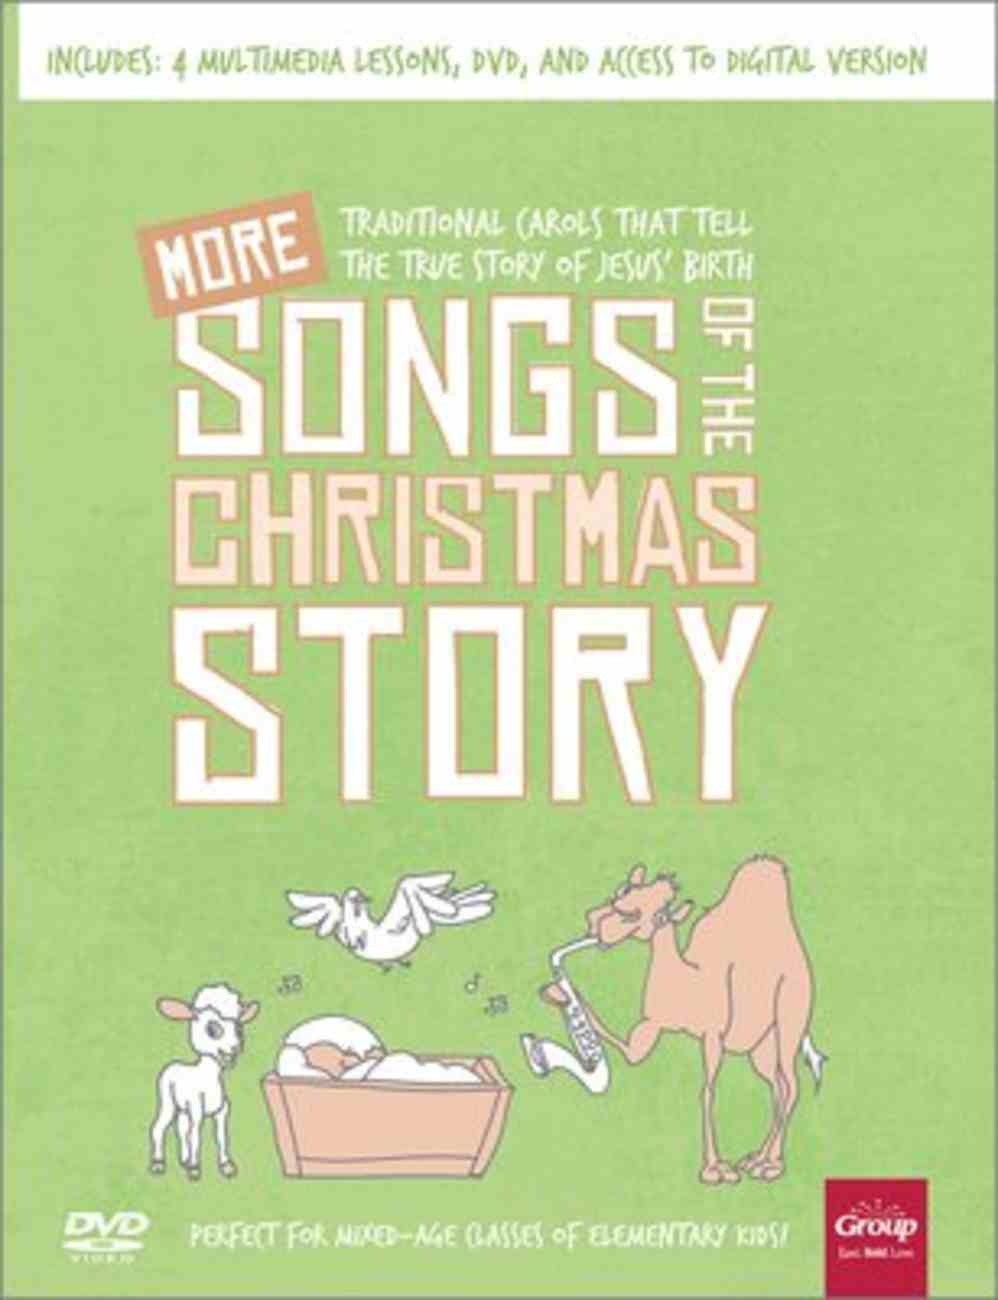 More Songs of the Christmas Story: Traditional Carols That Tell the True Story of Jesus' Birth Pack